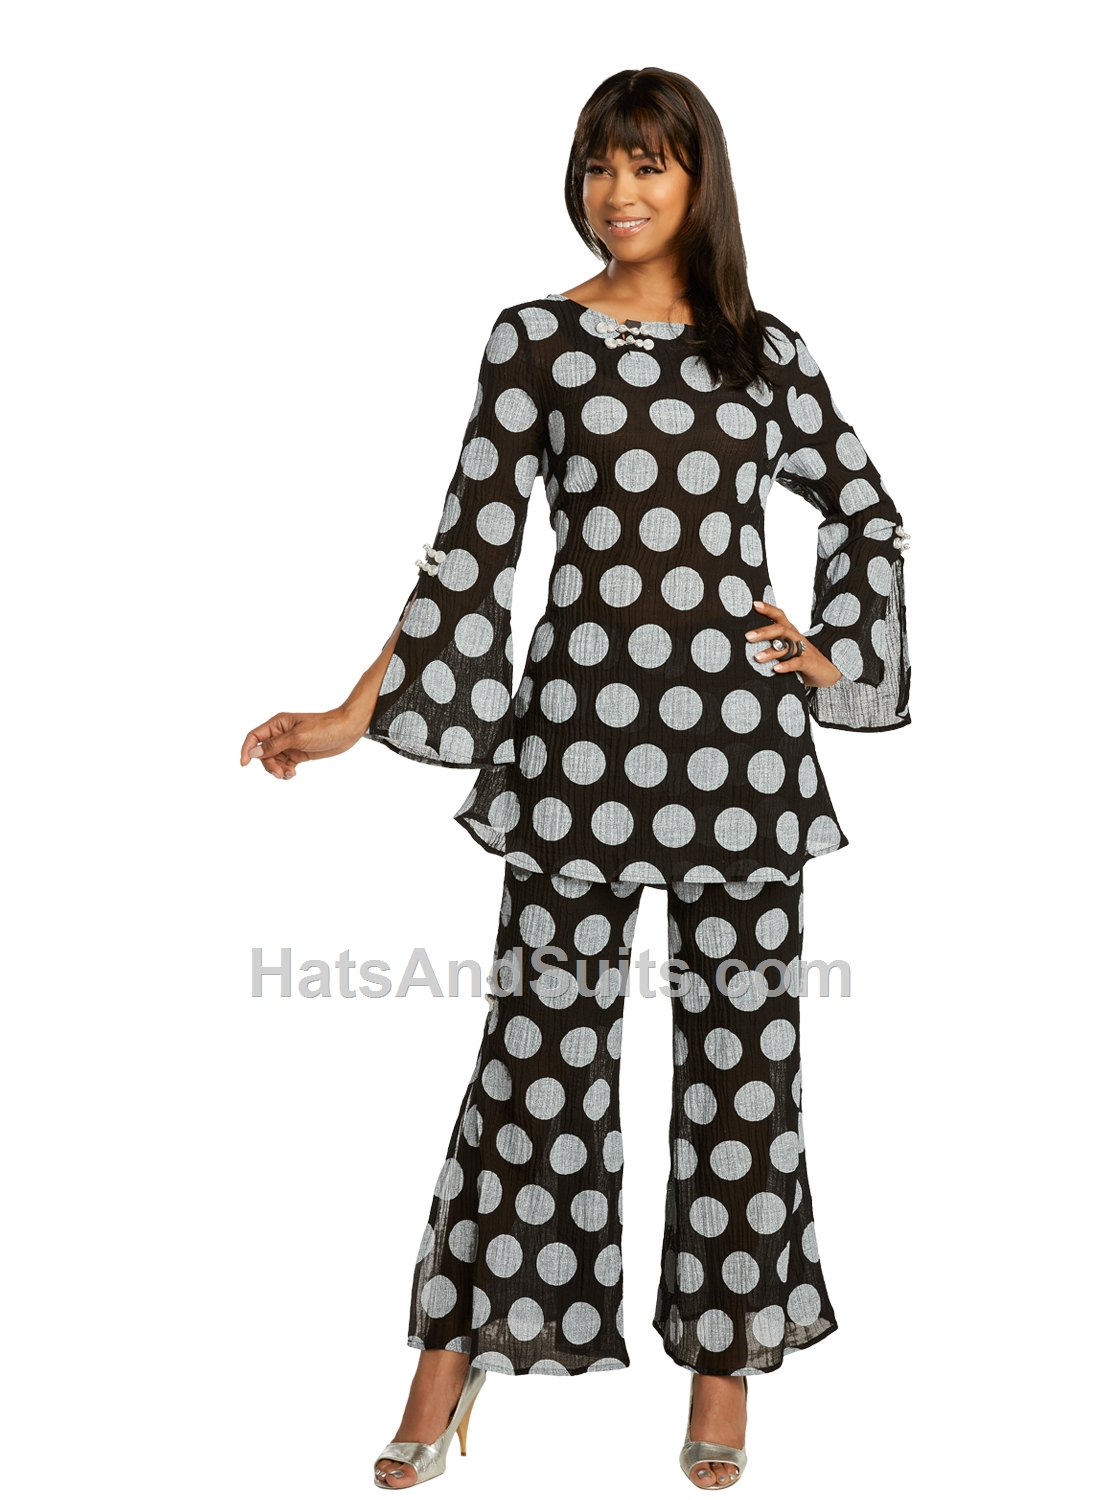 3360 LISA RENE' 2 Pc. Tunic & Pant Set. SP20